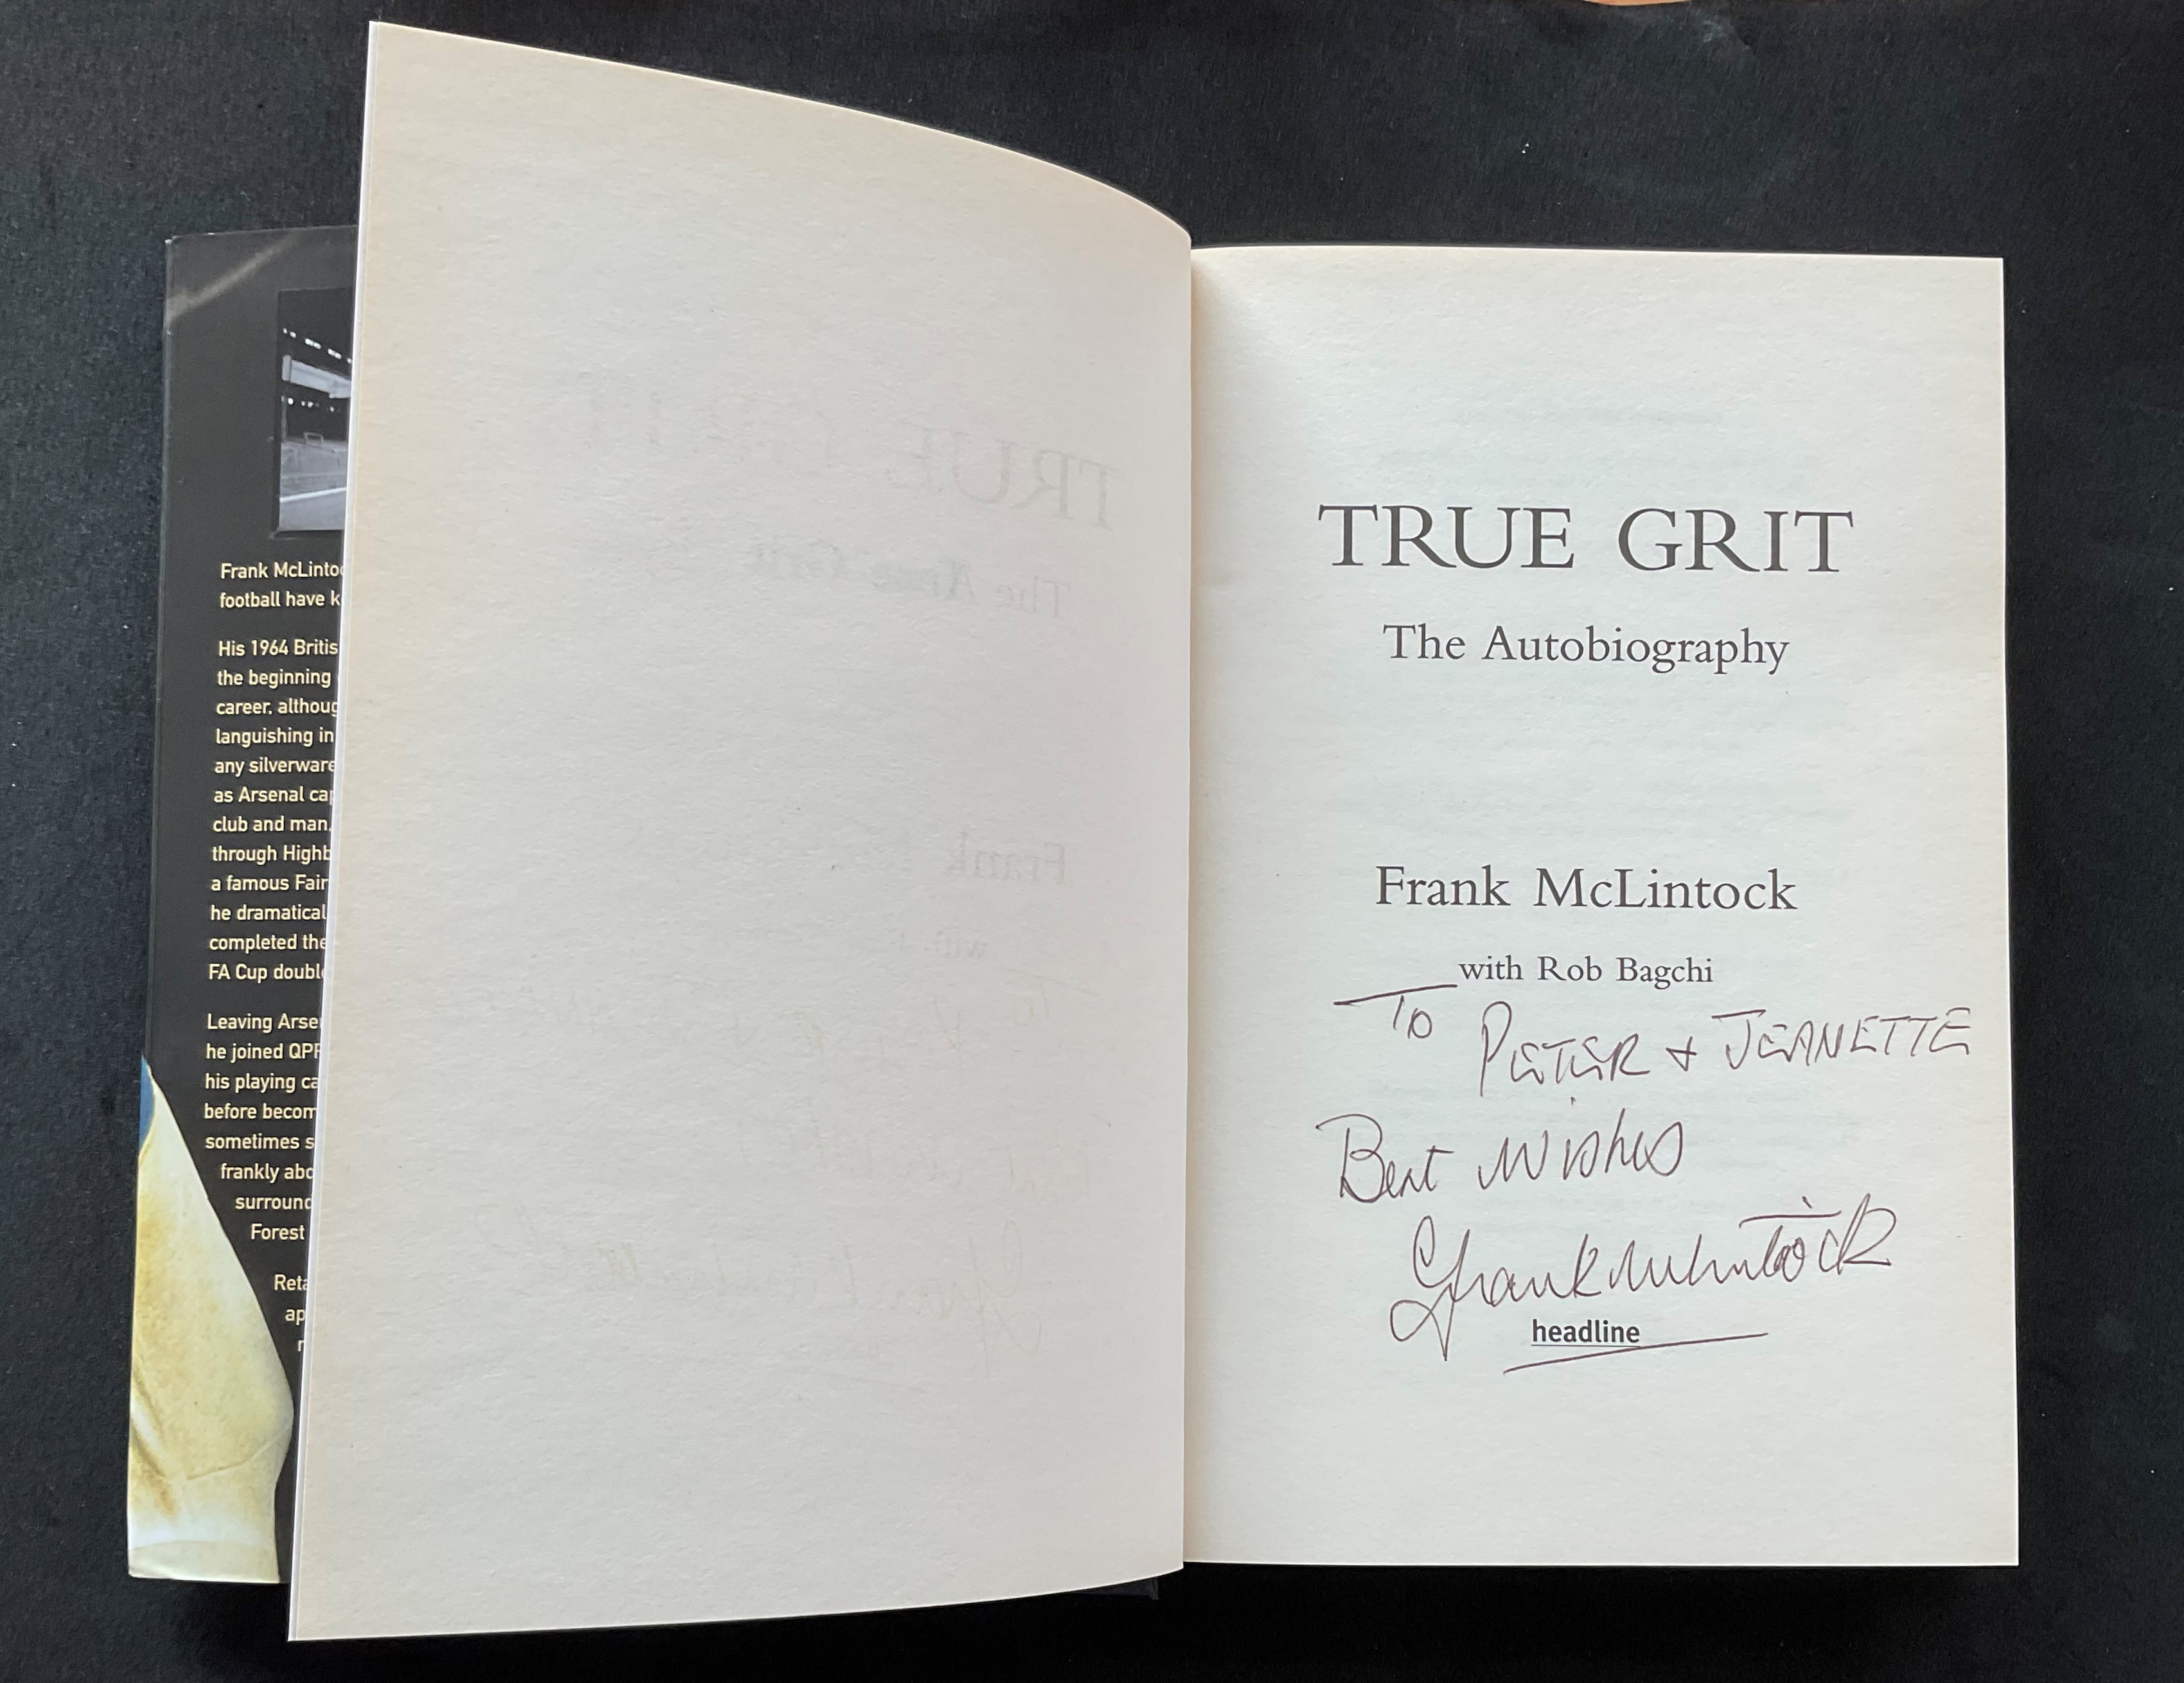 Footballer Frank McLintocks autobiography True Grit signed hardback copy dedicated to Peter and - Image 2 of 2